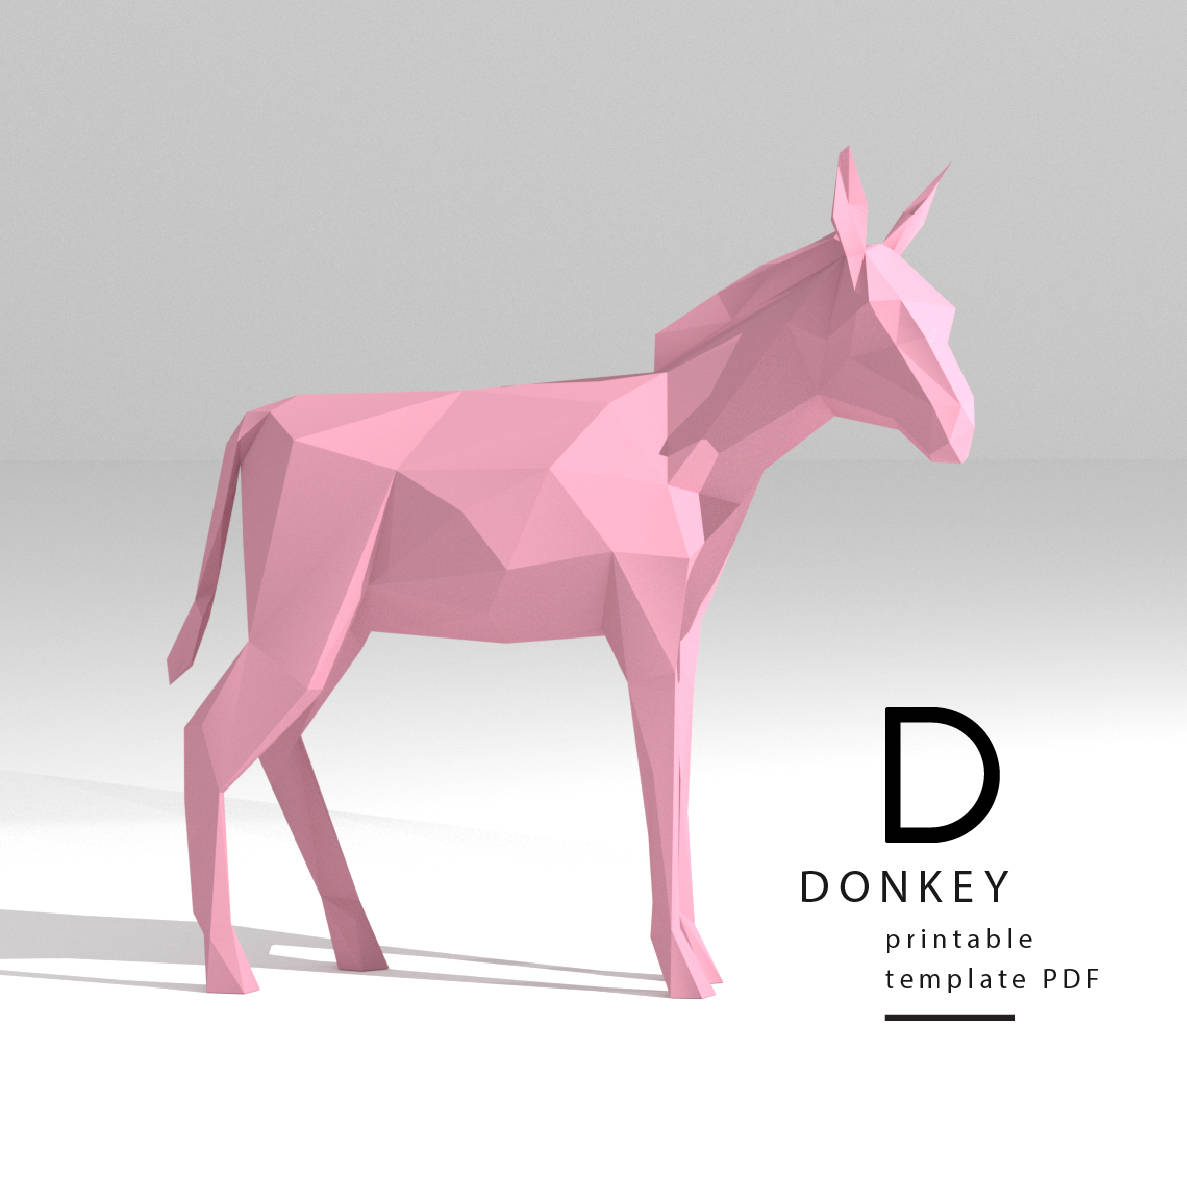 Printable DIY template PDF. Donkey low poly paper model | Etsy